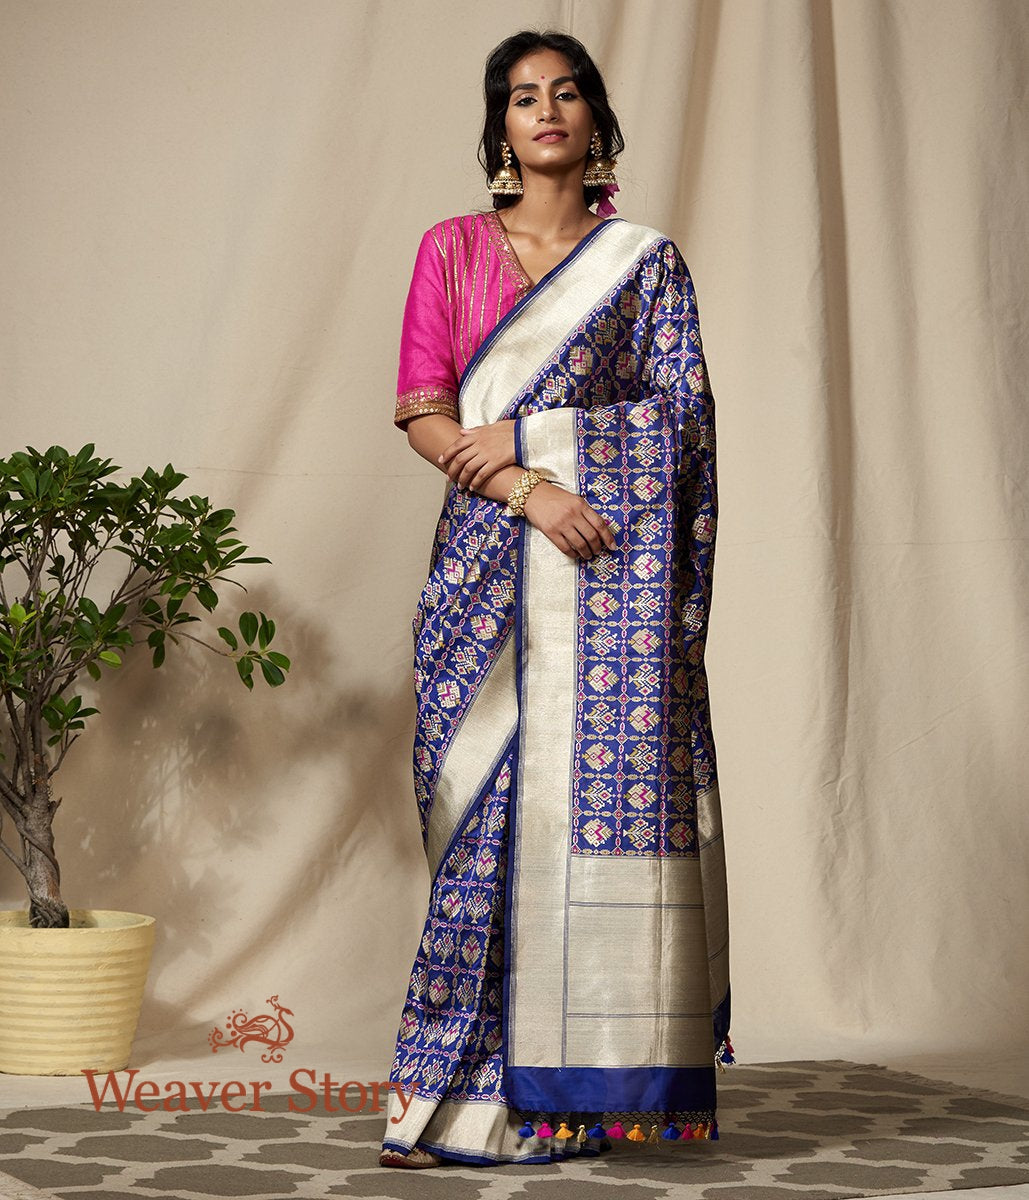 Handwoven Banarasi Patola Saree in Blue with Meenakari